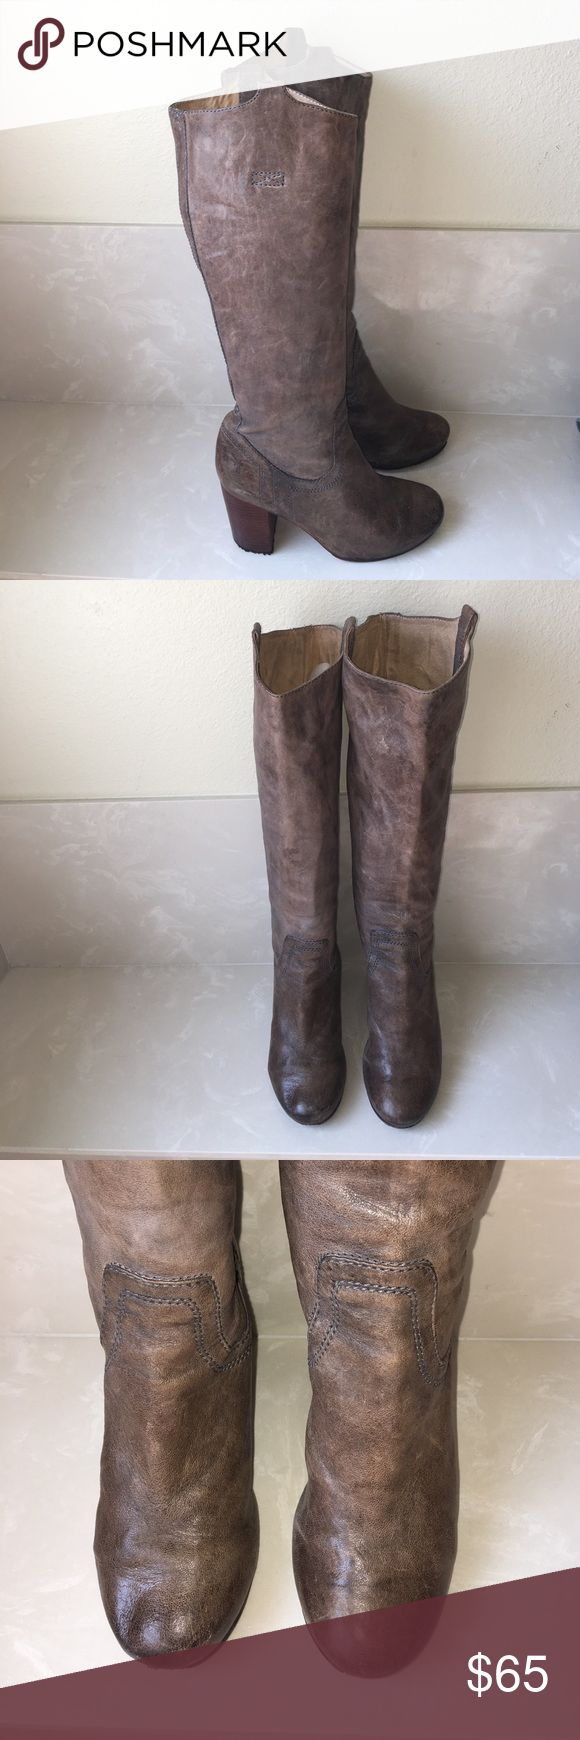 "Authentic Frye leather vintage look boots sz 8.5 Authentic Frye leather vintage look boots sz 8.5 heels measure 3.5"" tall boots have been loved- scuffs and creasing in leather sold as is Frye Shoes Heeled Boots"